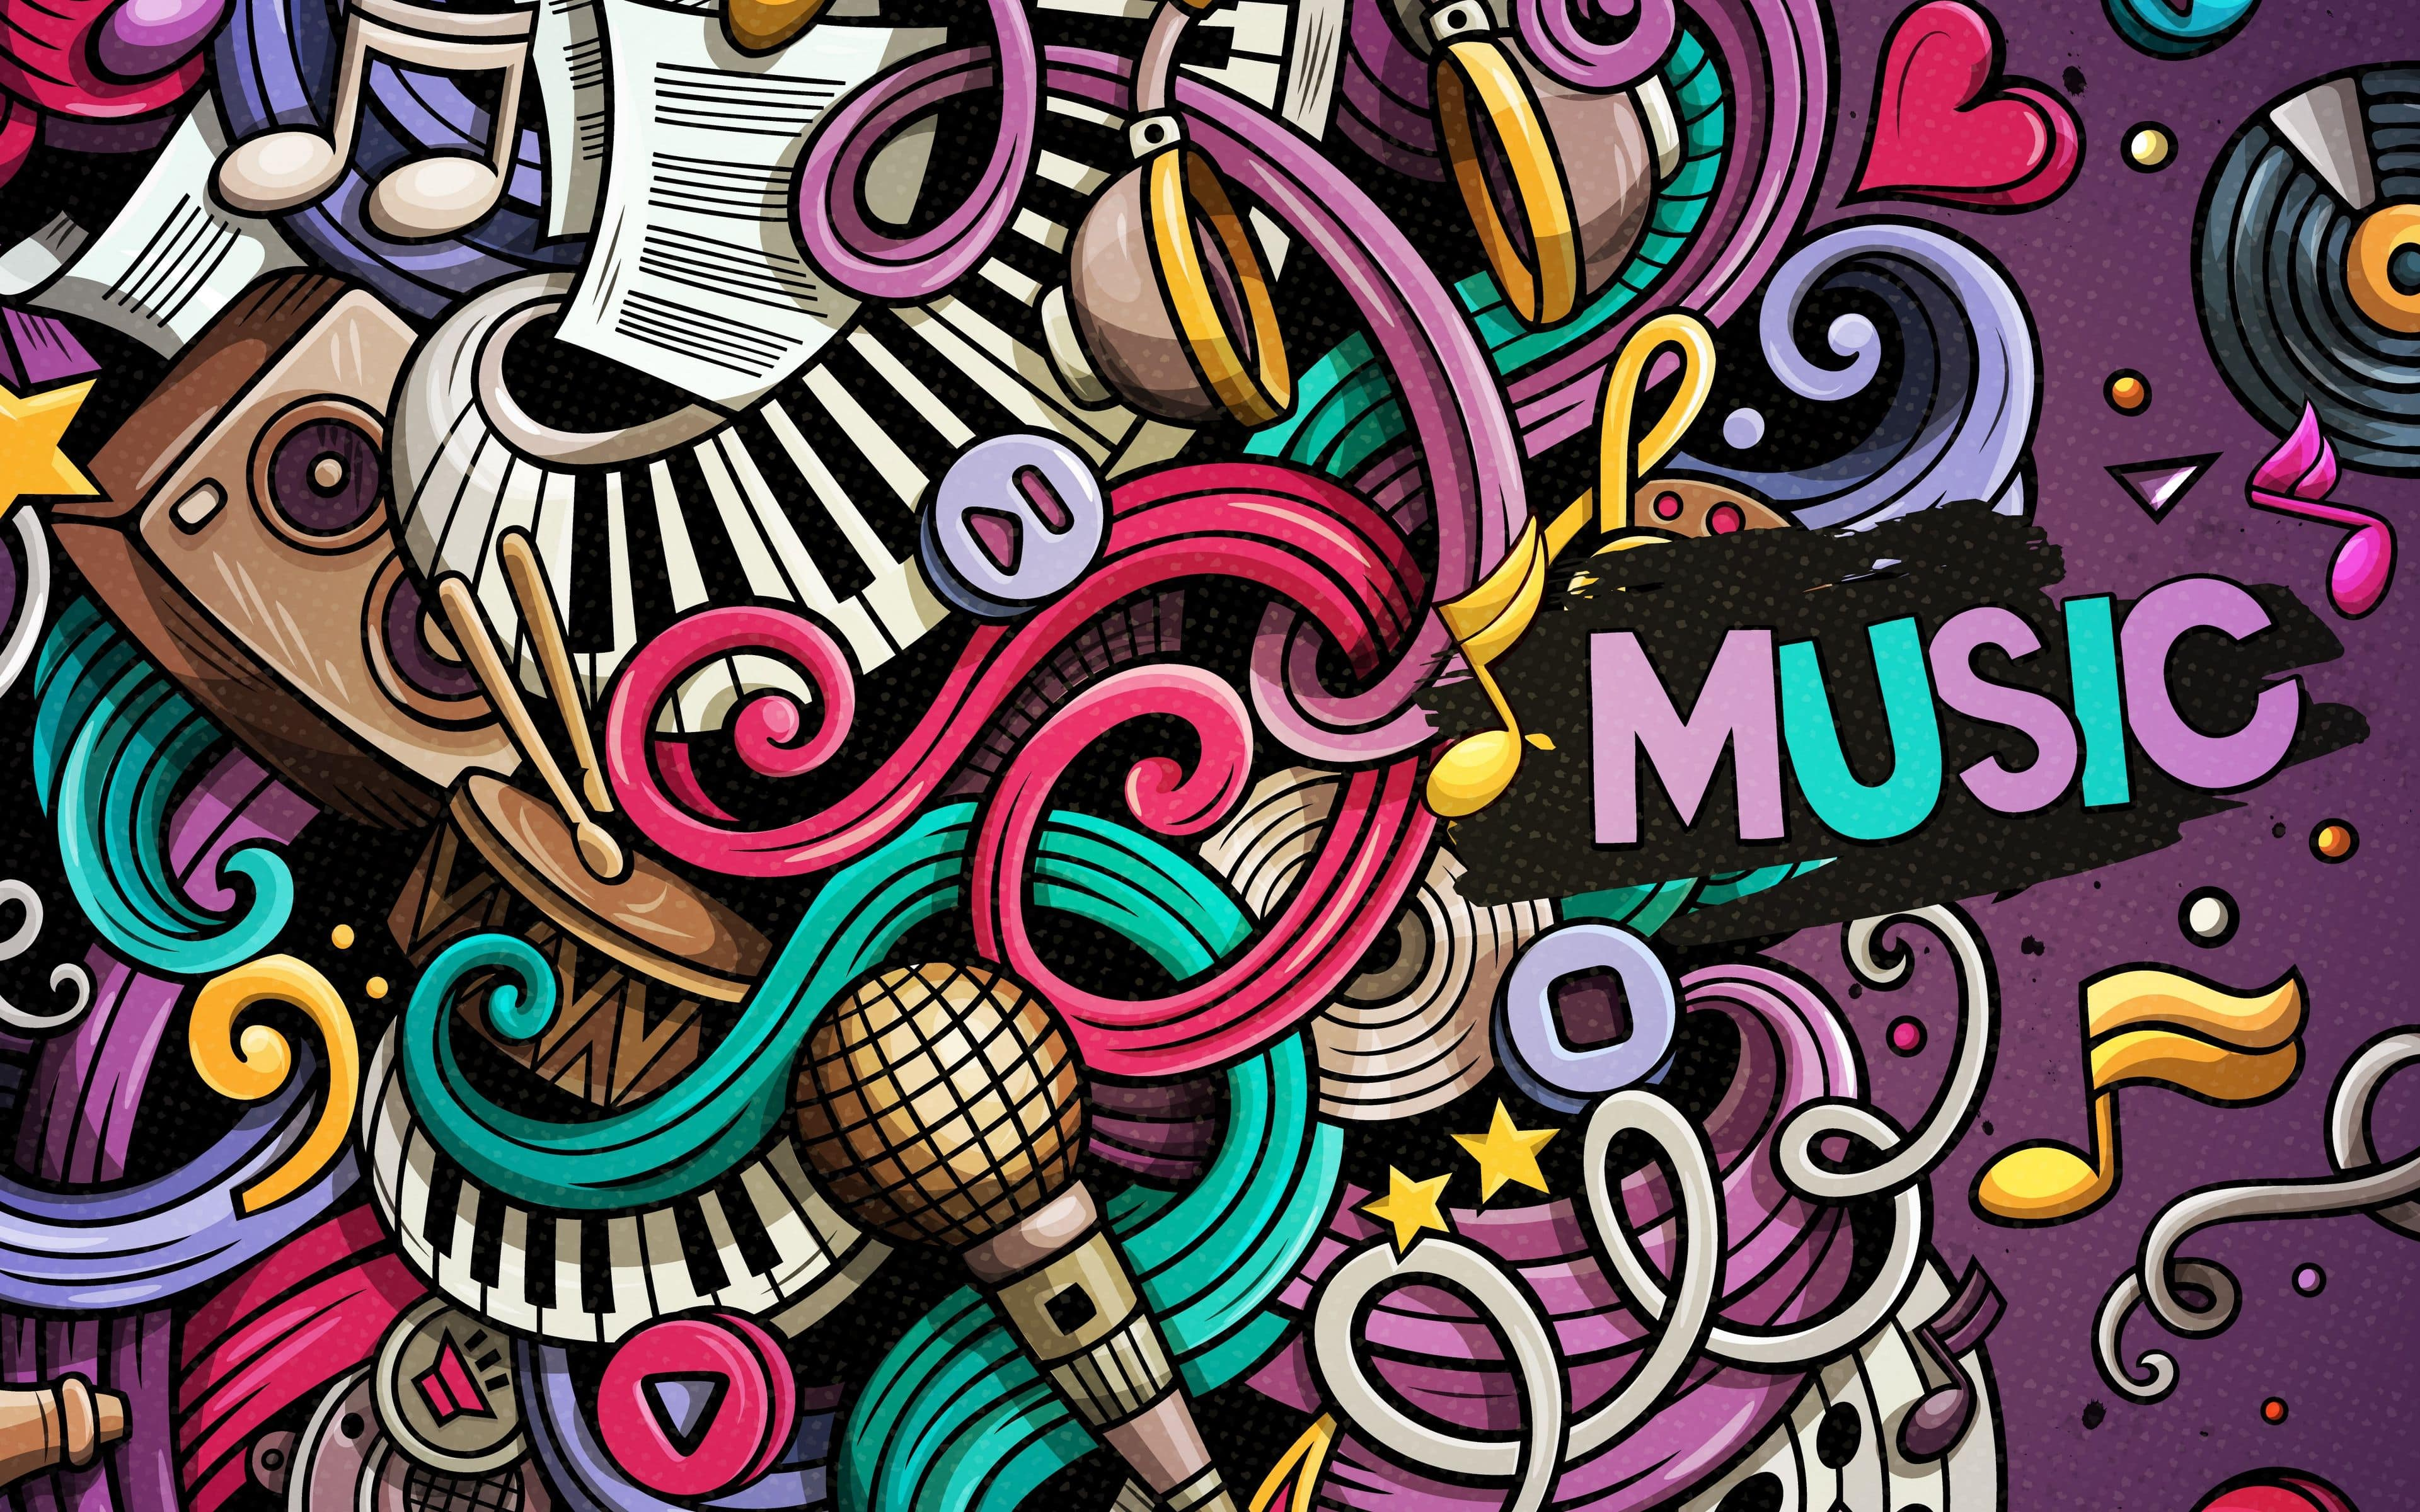 Doodle Music Wallpaper Kolpaper Awesome Free Hd Wallpapers